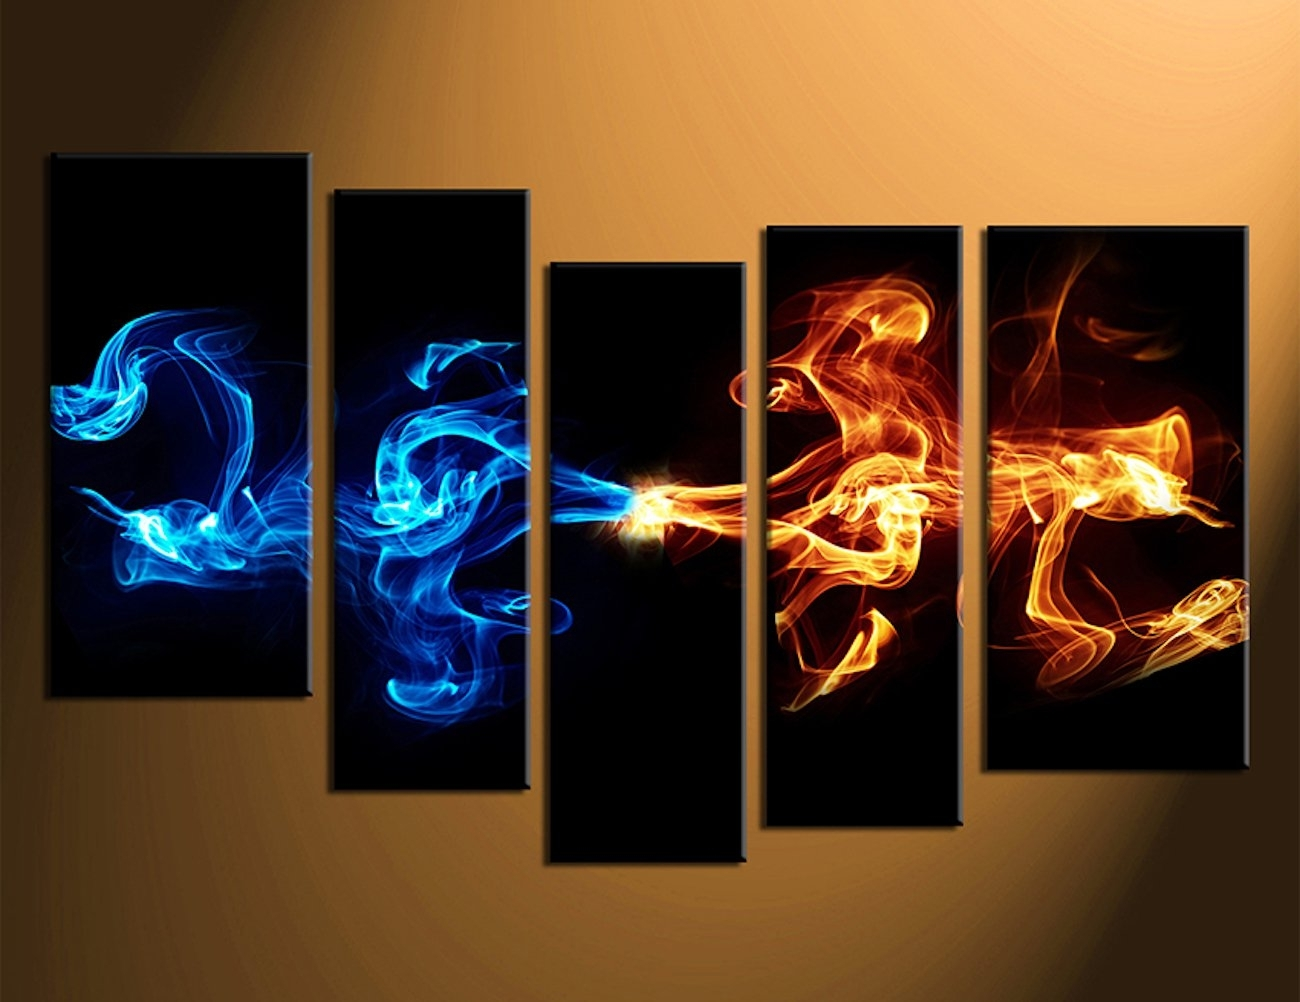 Abstract 5 Piece Smoke Canvas Wall Art » Gadget Flow For Best And Newest 5 Piece Wall Art Canvas (View 8 of 15)